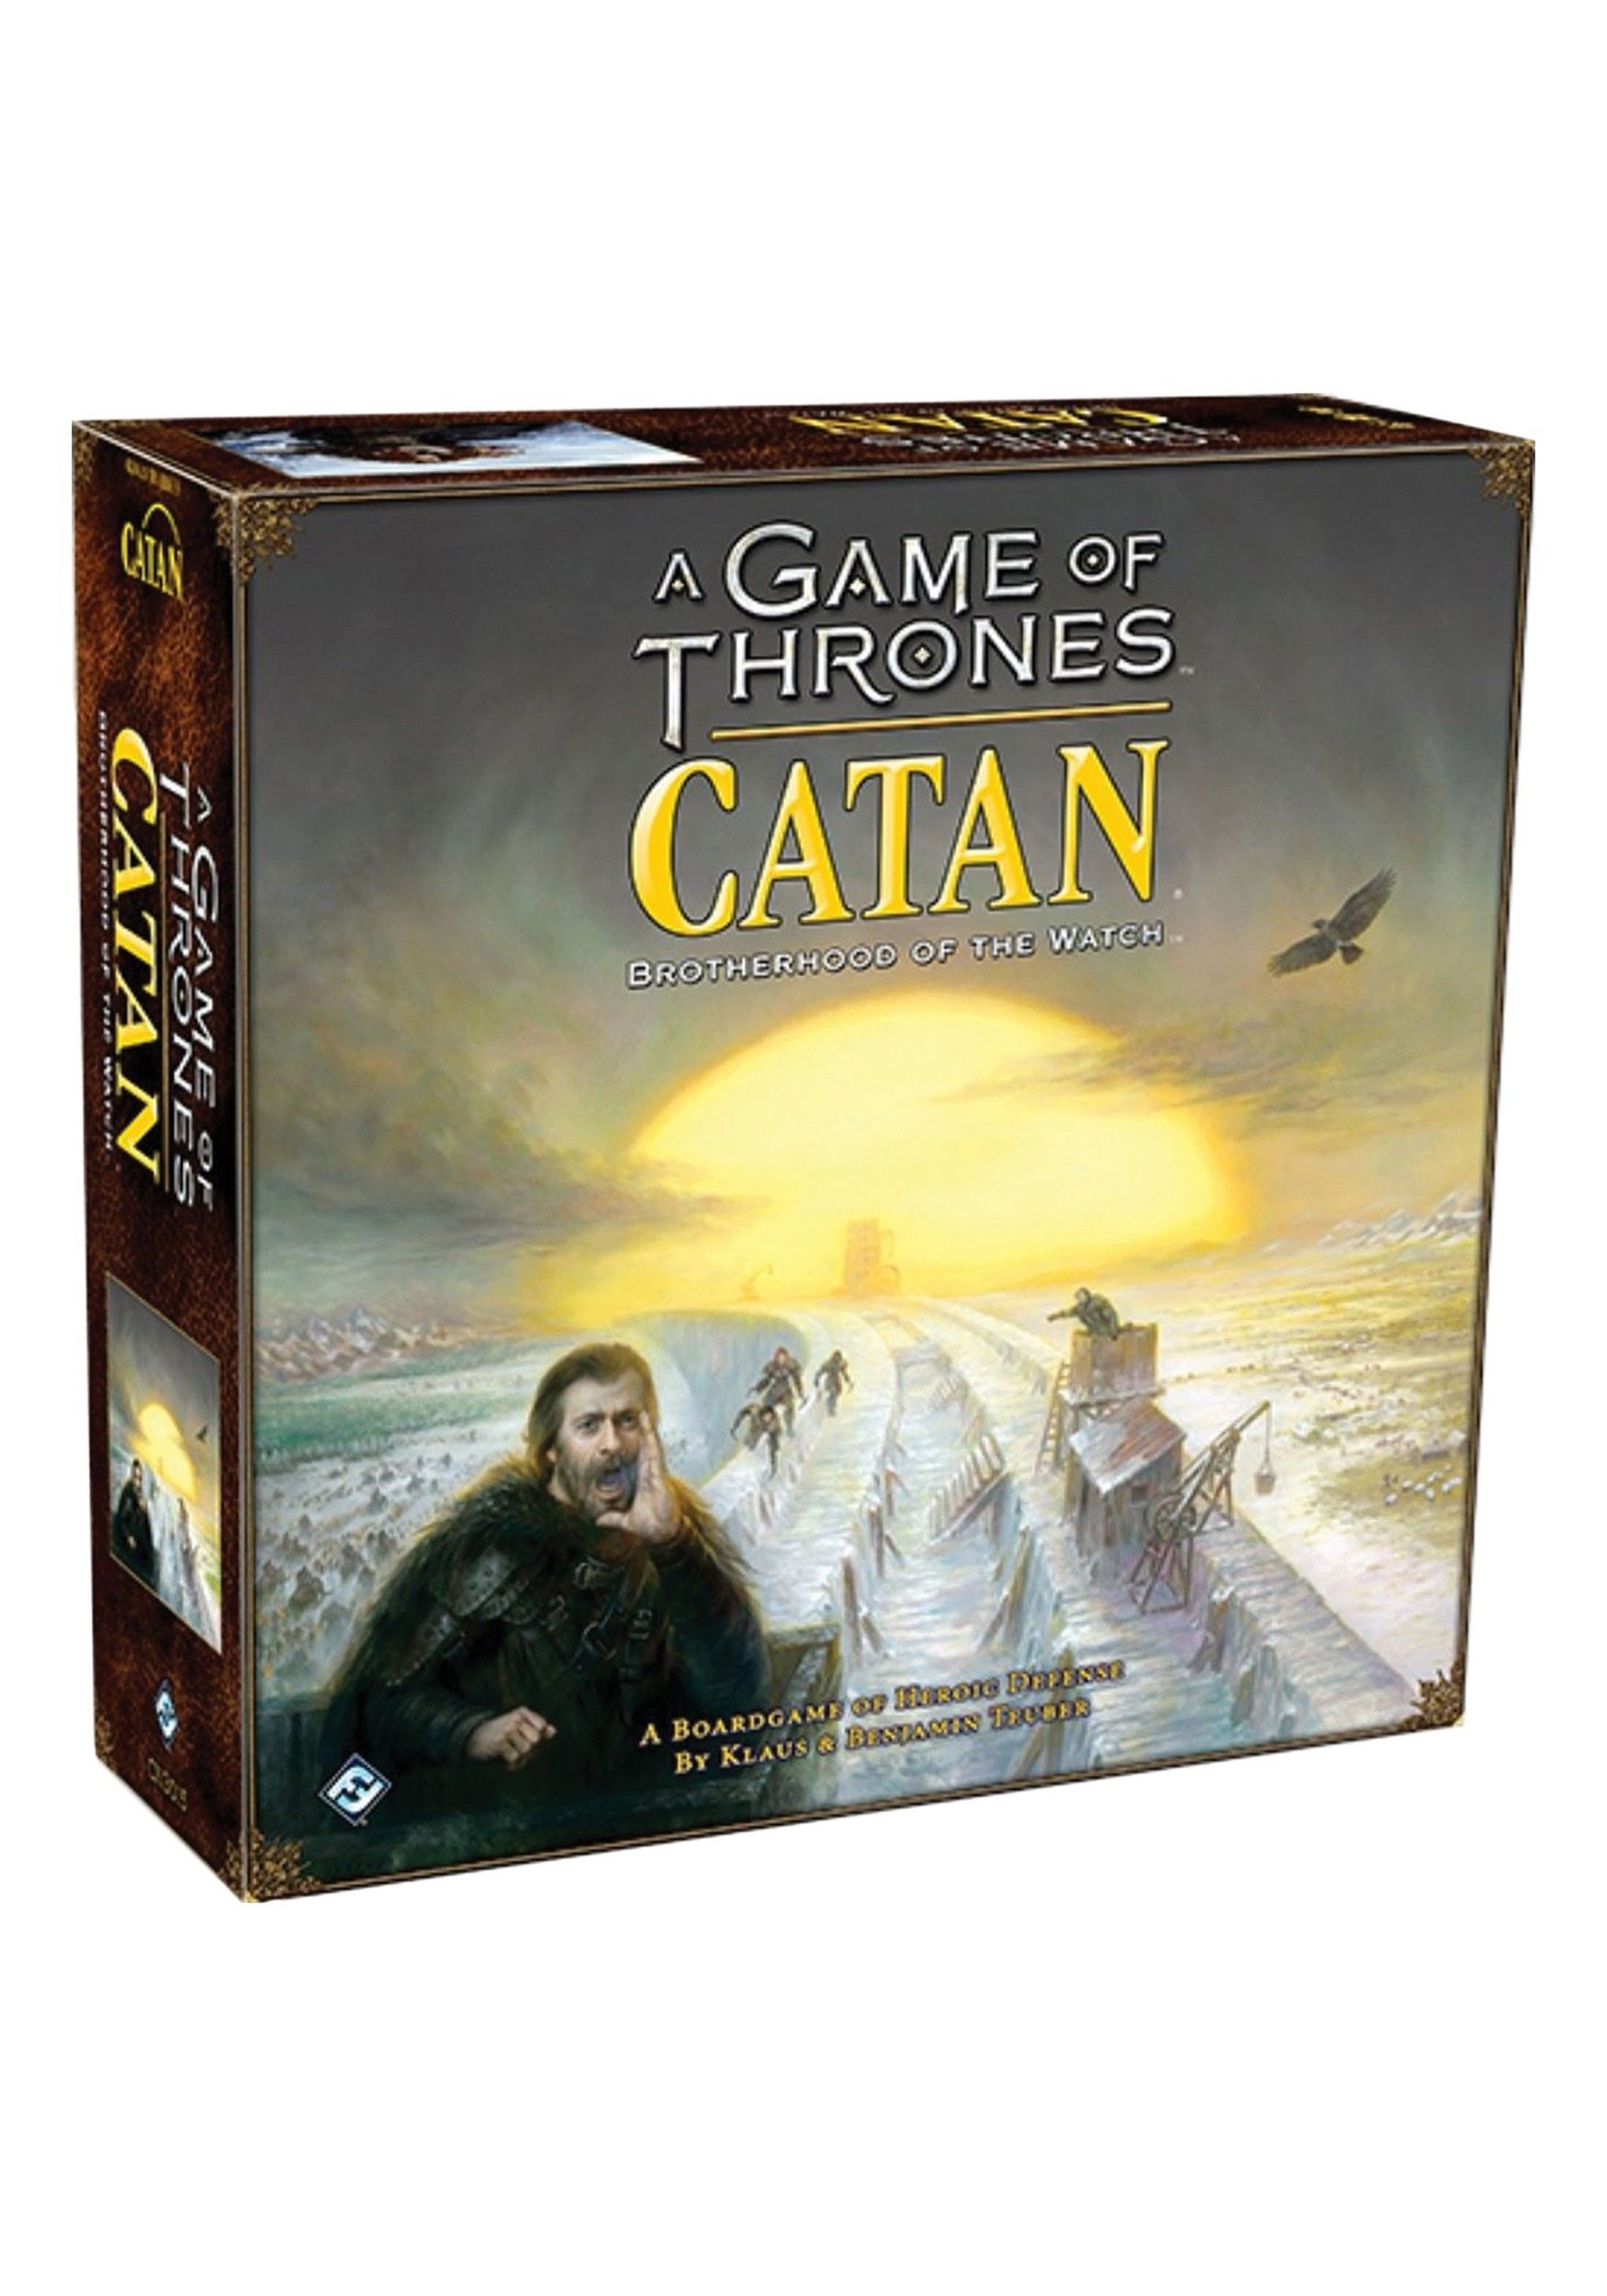 A_Game_of_Thrones_Catan_Brotherhood_of_the_Watch_Board_Game